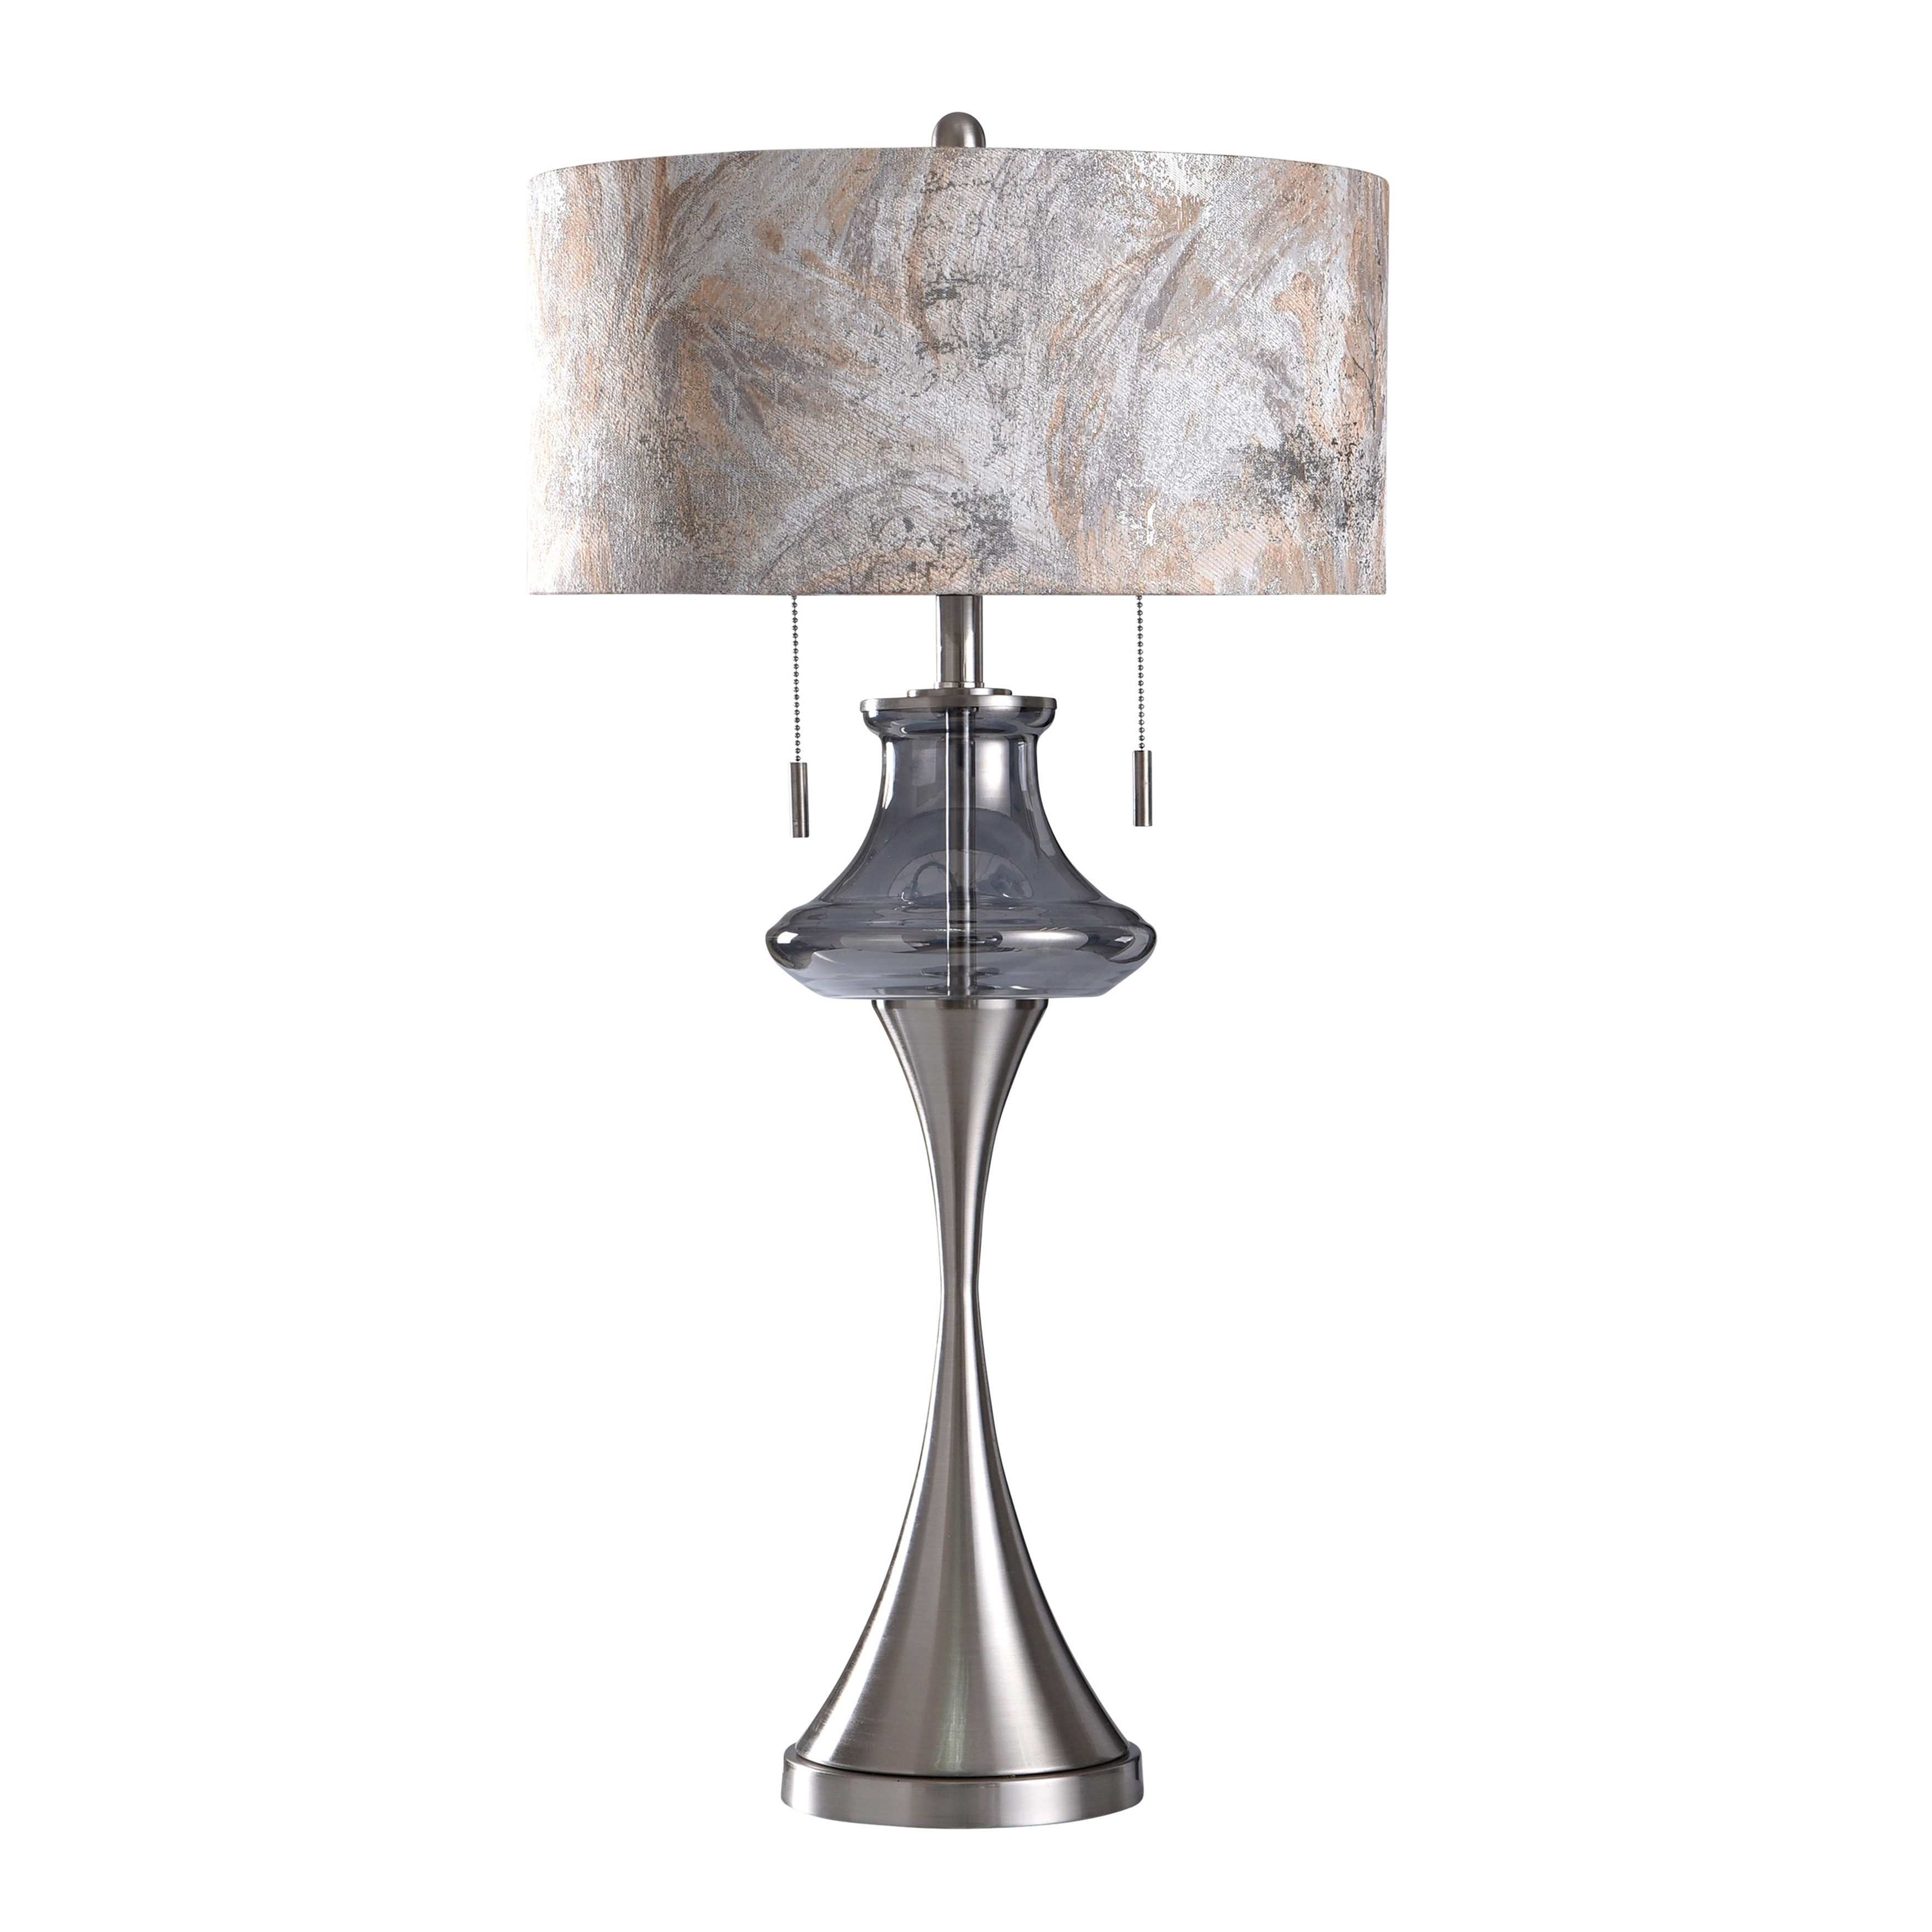 Stylecraft Callington Silver Twin Pull Chain Glass Drop Curved Metal Base Table Lamp Designer Shade Overstock 27704100